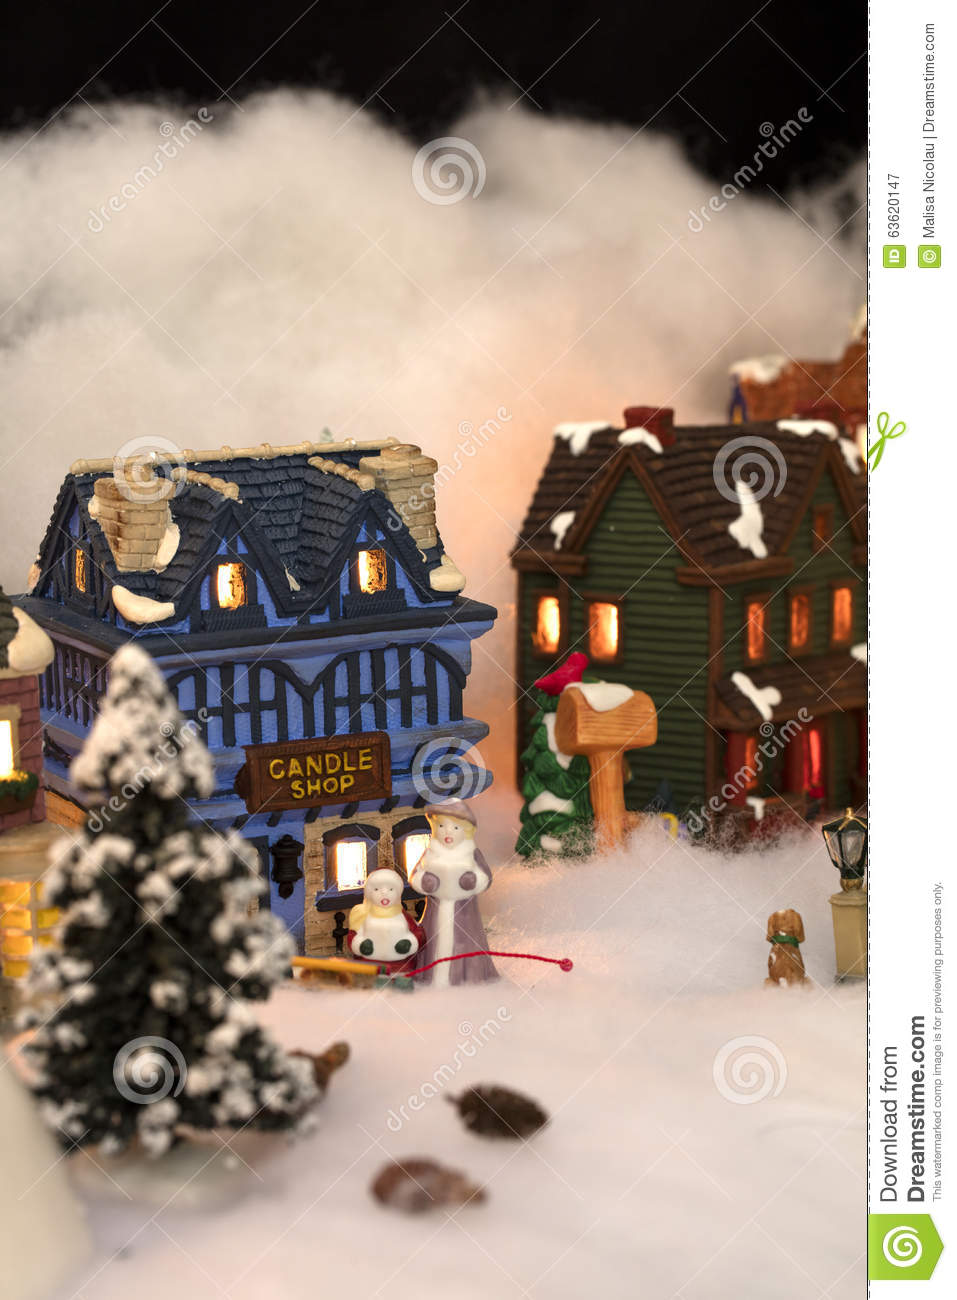 Miniature Christmas Village Scene Stock Photo - Image ...